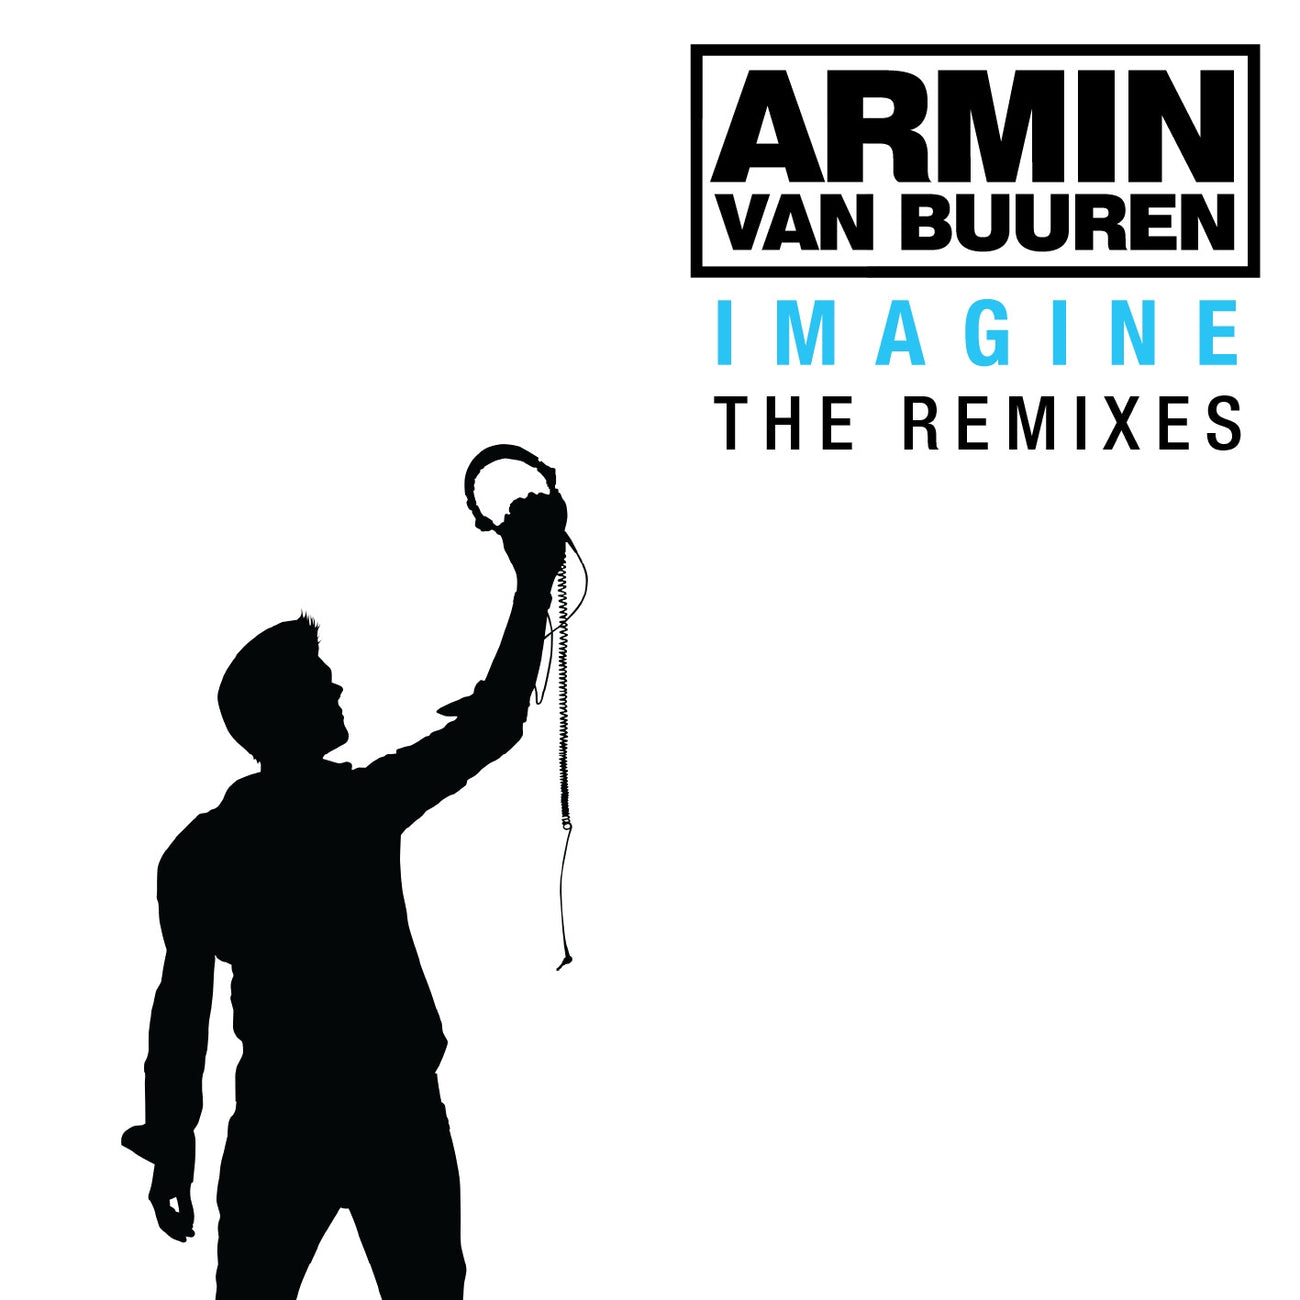 Armin van Buuren - Imagine (The Remixes)